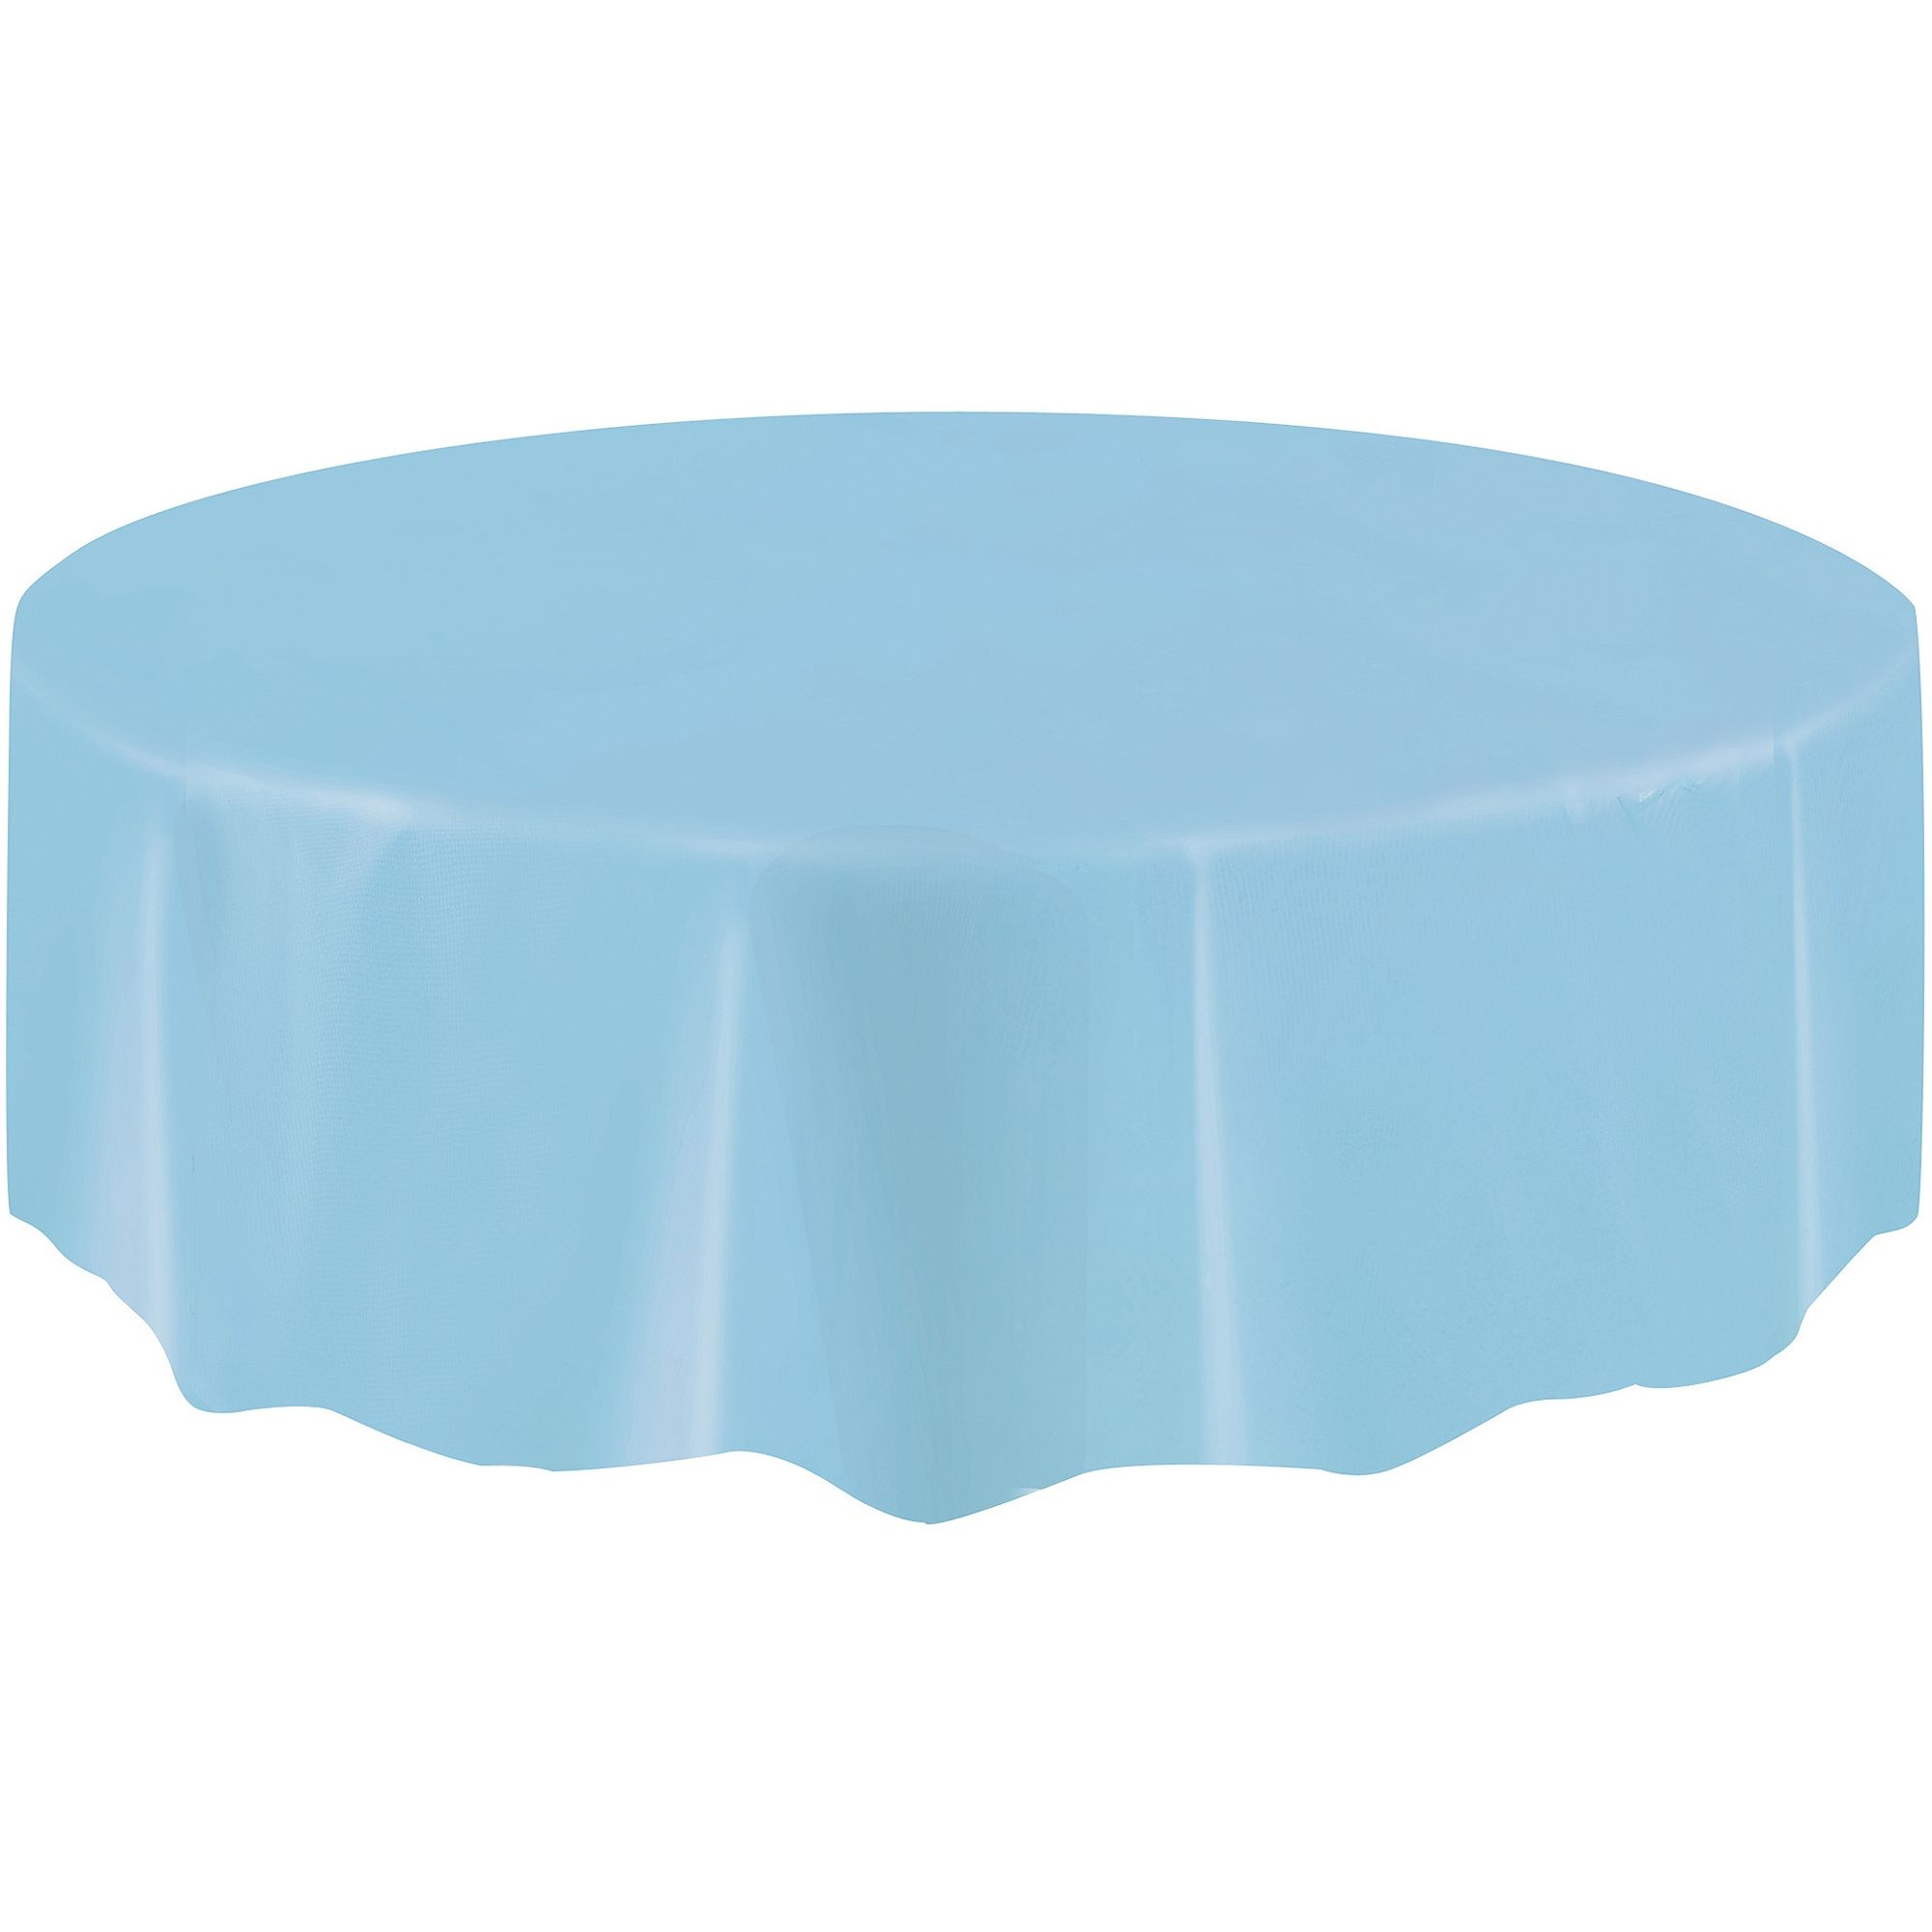 60 Round Plastic Tablecloths